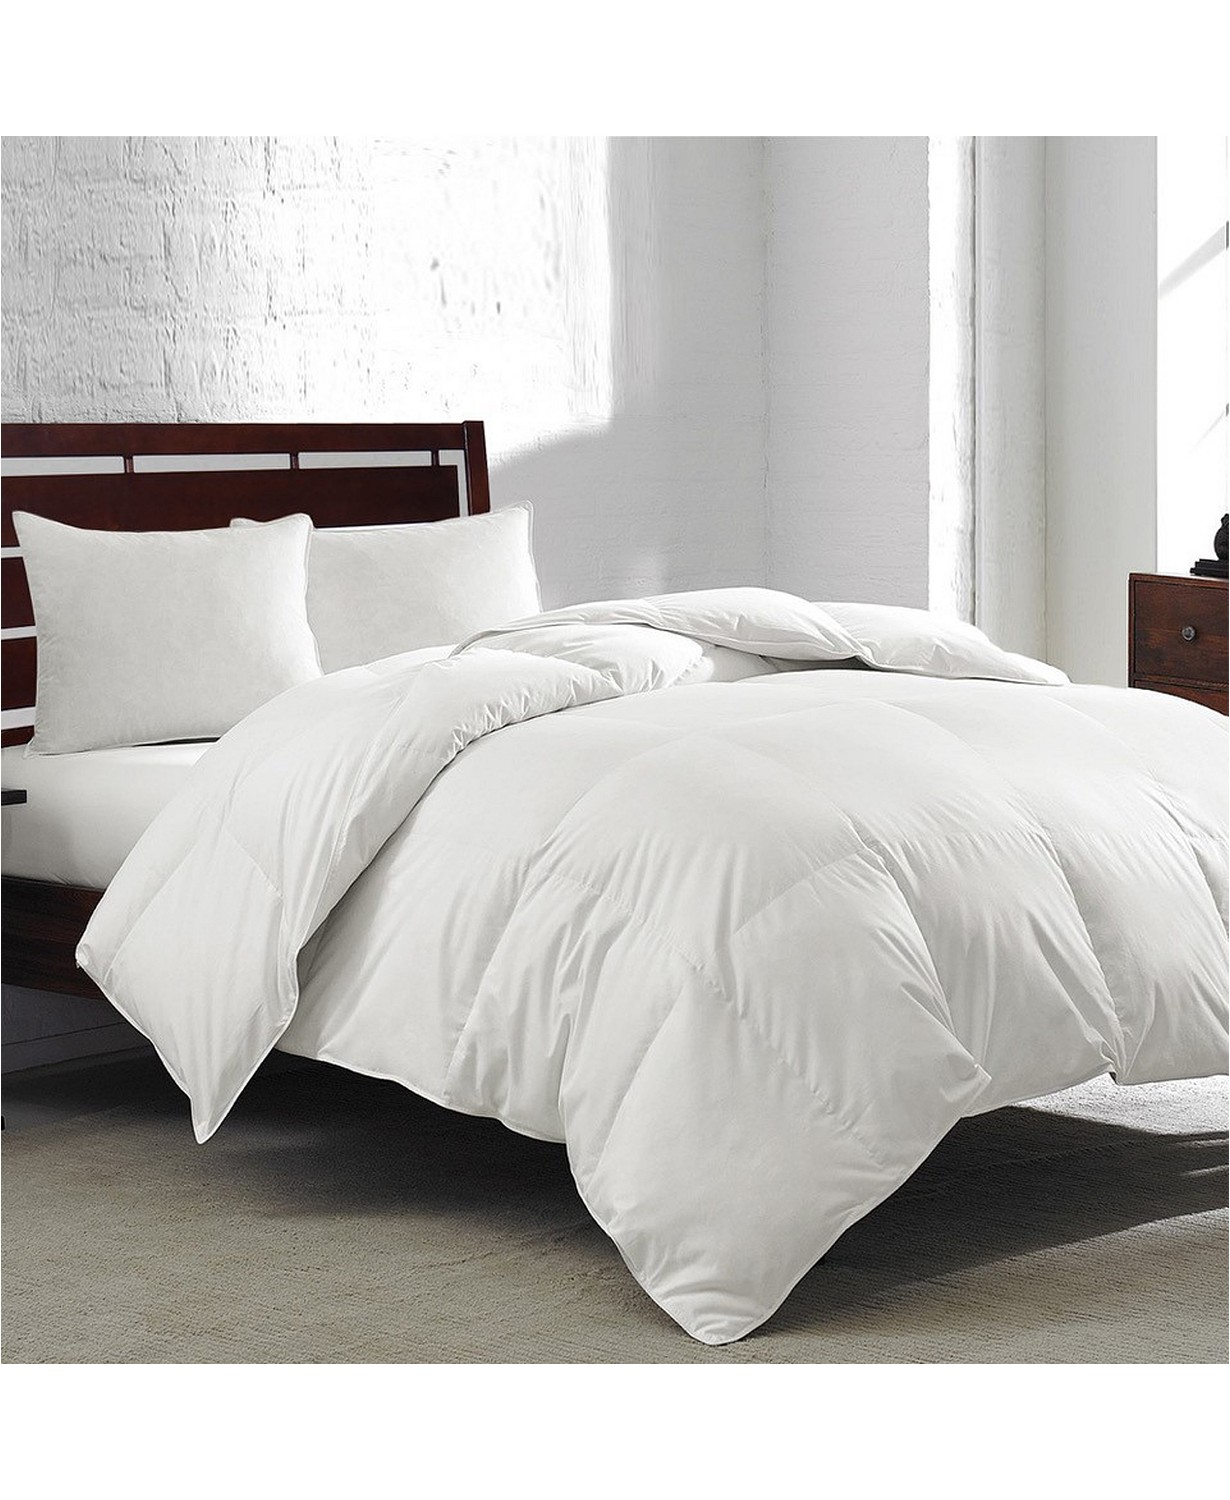 (72% OFF Deal) Goose Feather & Down 240-Thread Count Full/Queen Comforter $44.99